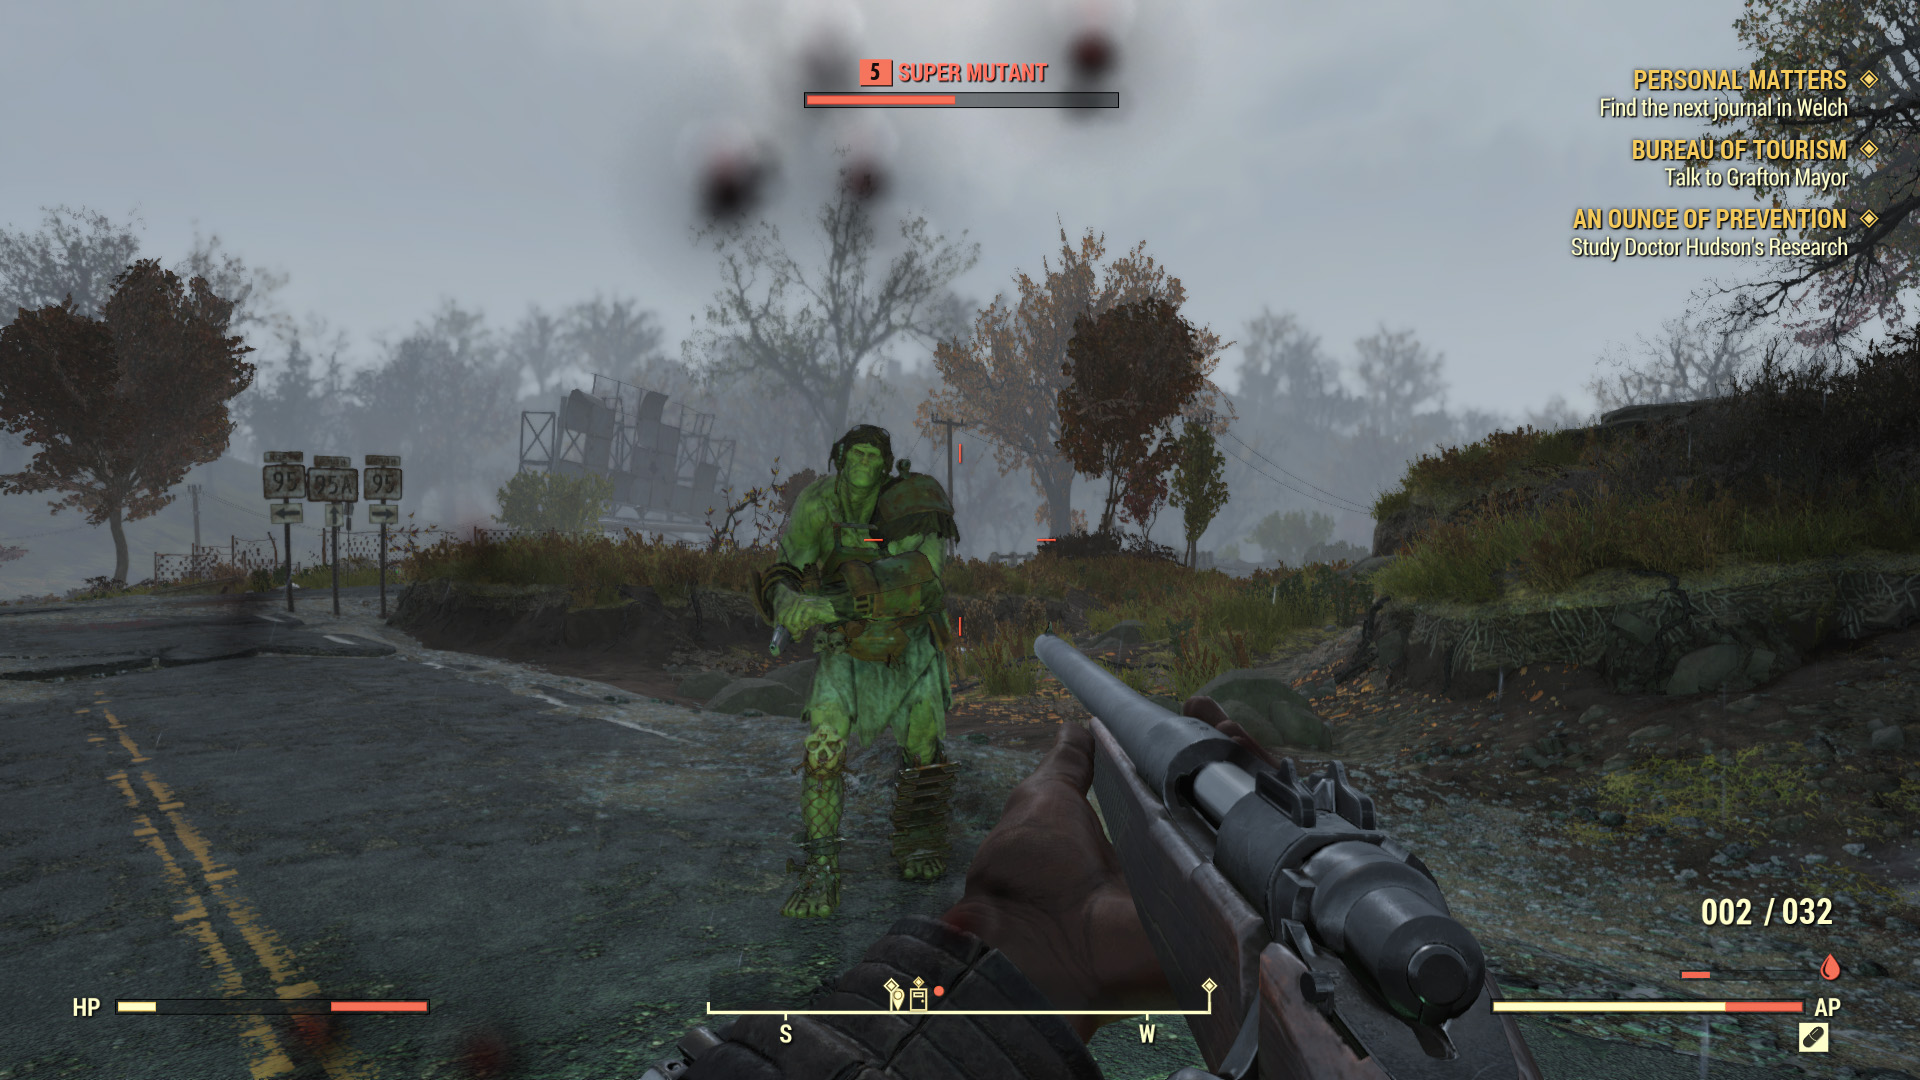 Fallout 76 Review Impressions: 15 Hours and Counting | USgamer